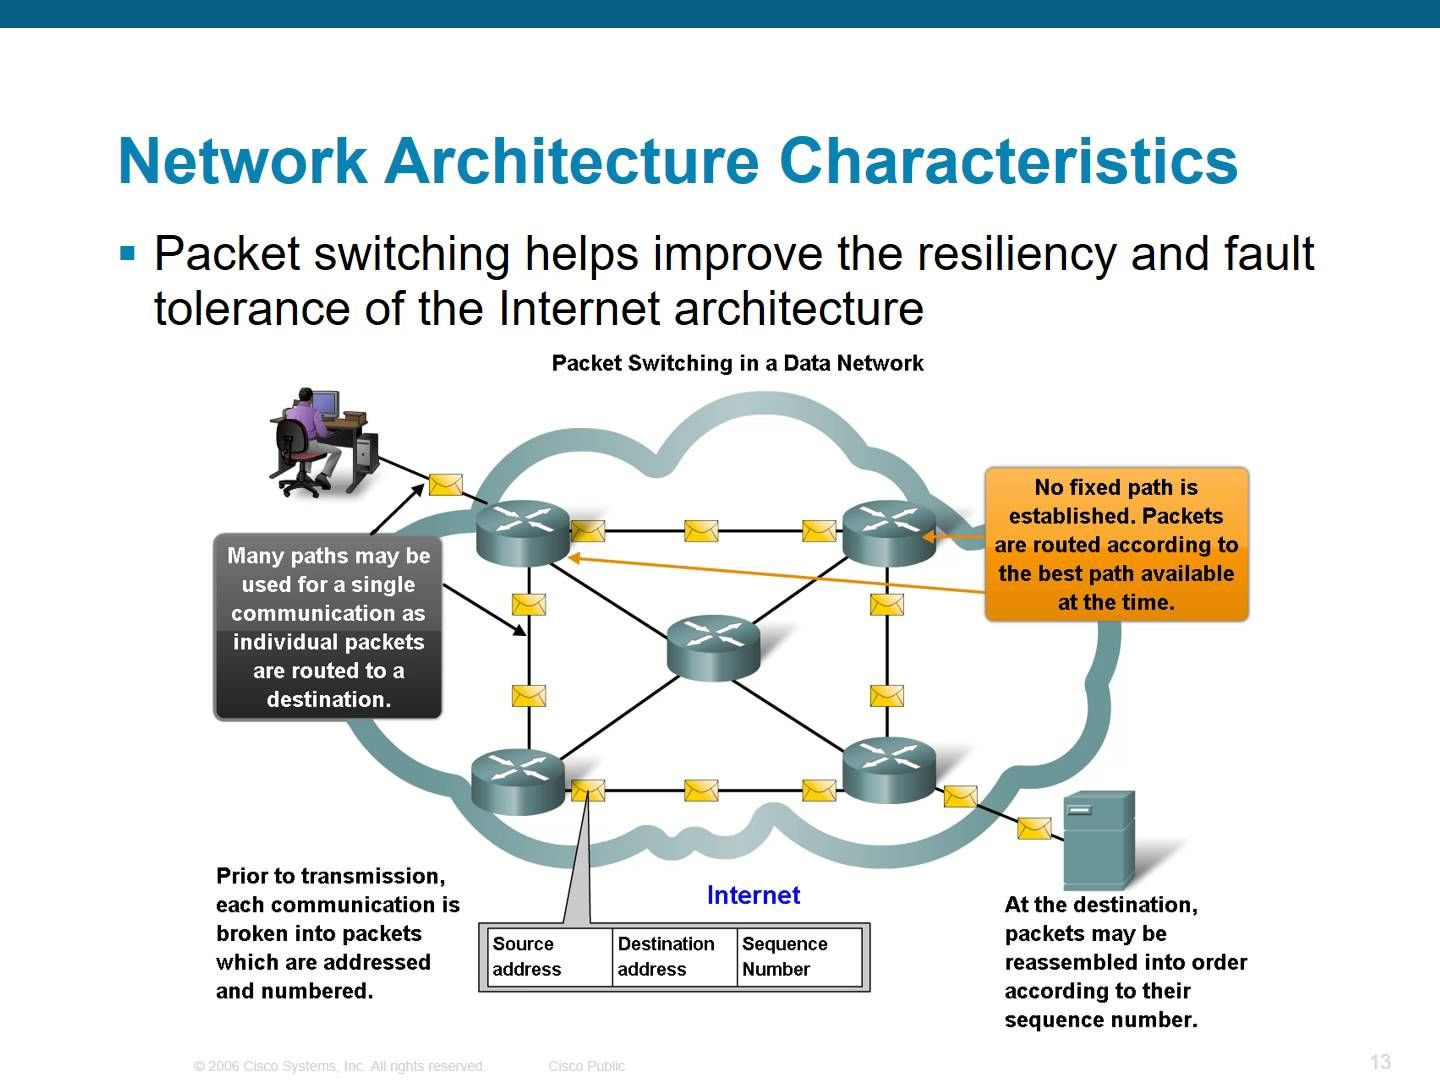 Network Fundamentals Chapter 1 Packet Switching Networking Data Network